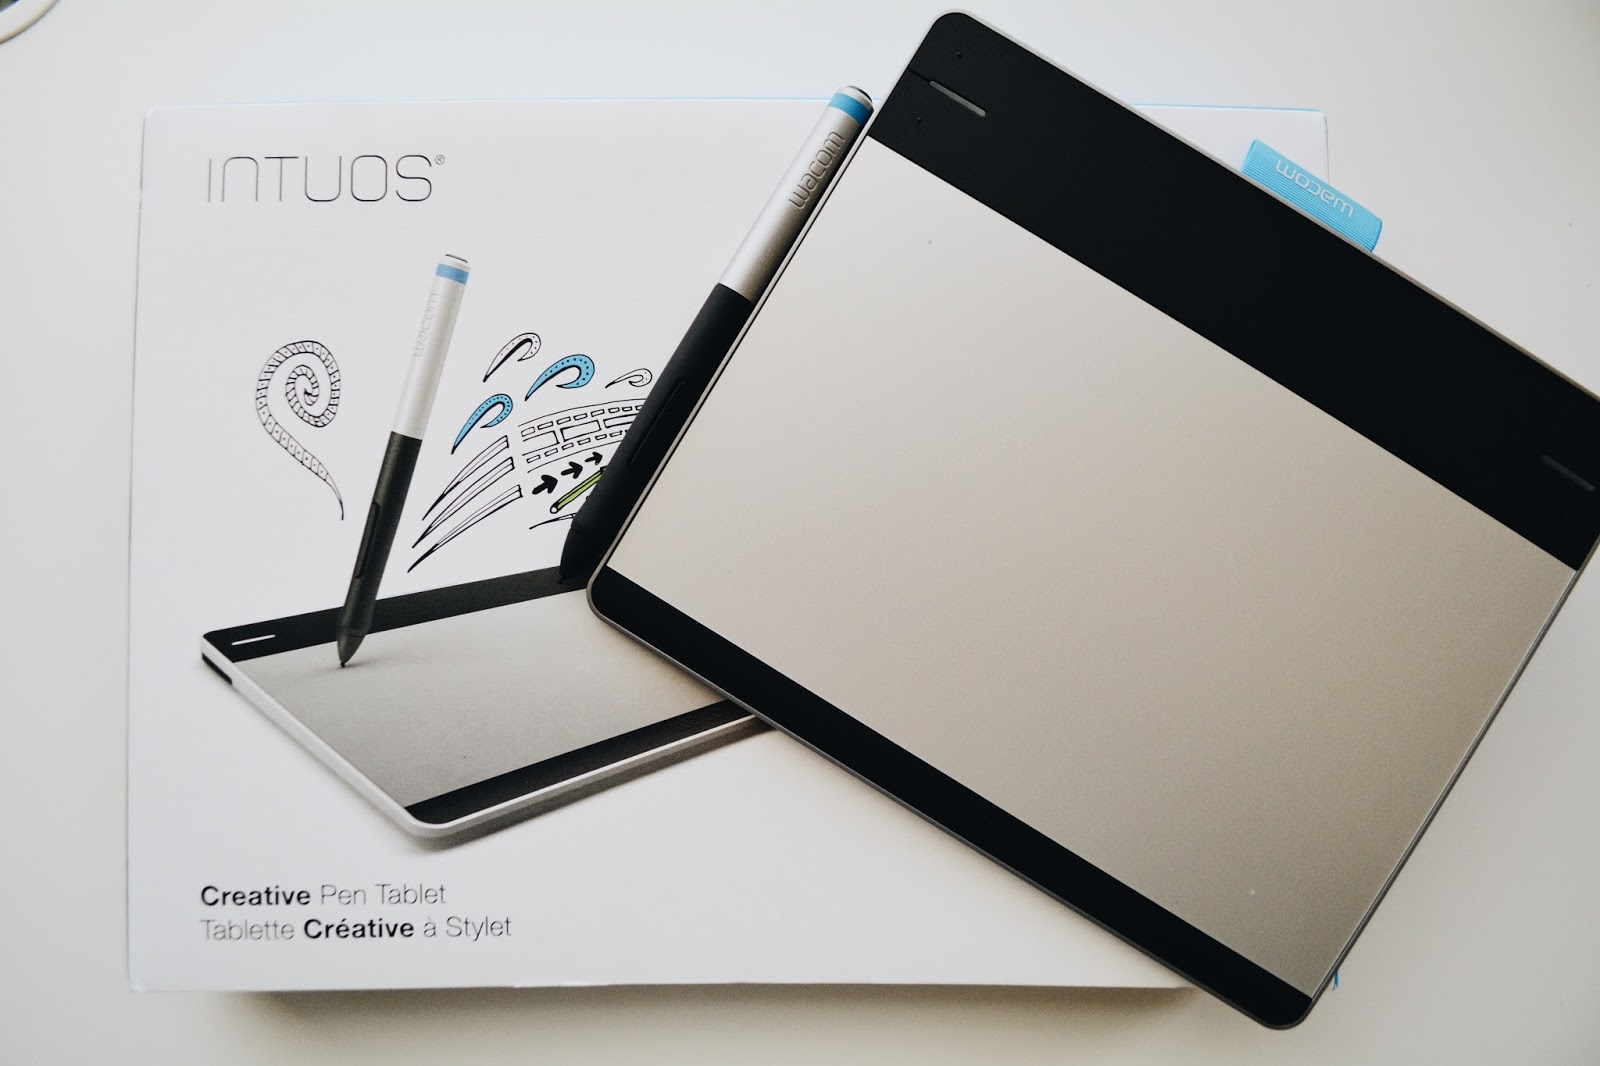 wacom tablet review using a macbook pro for graphic designers